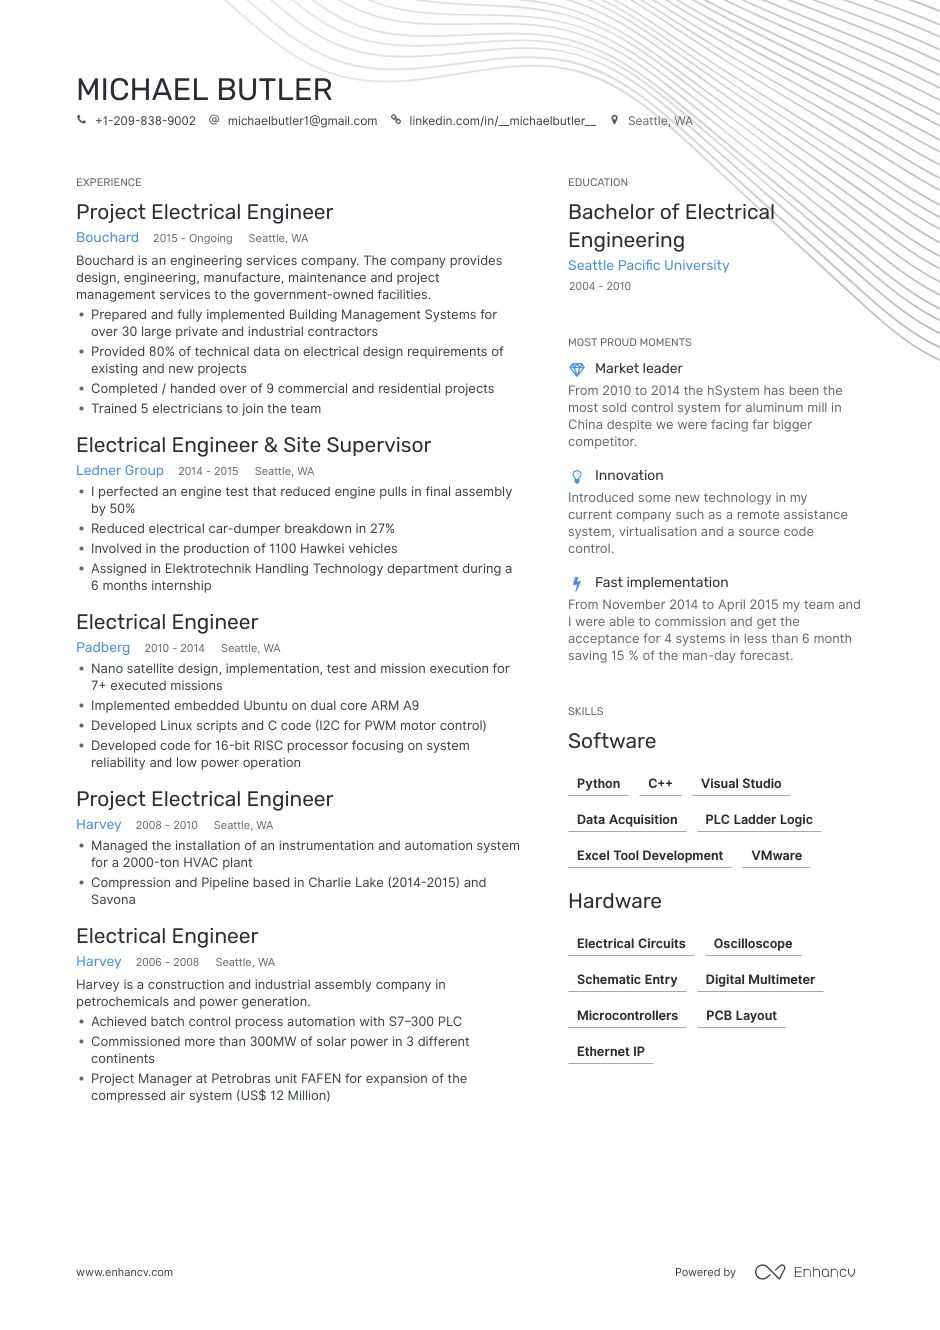 electrical engineer resume examples pro tips featured enhancv system engineering primary Resume Electrical Power System Engineer Resume